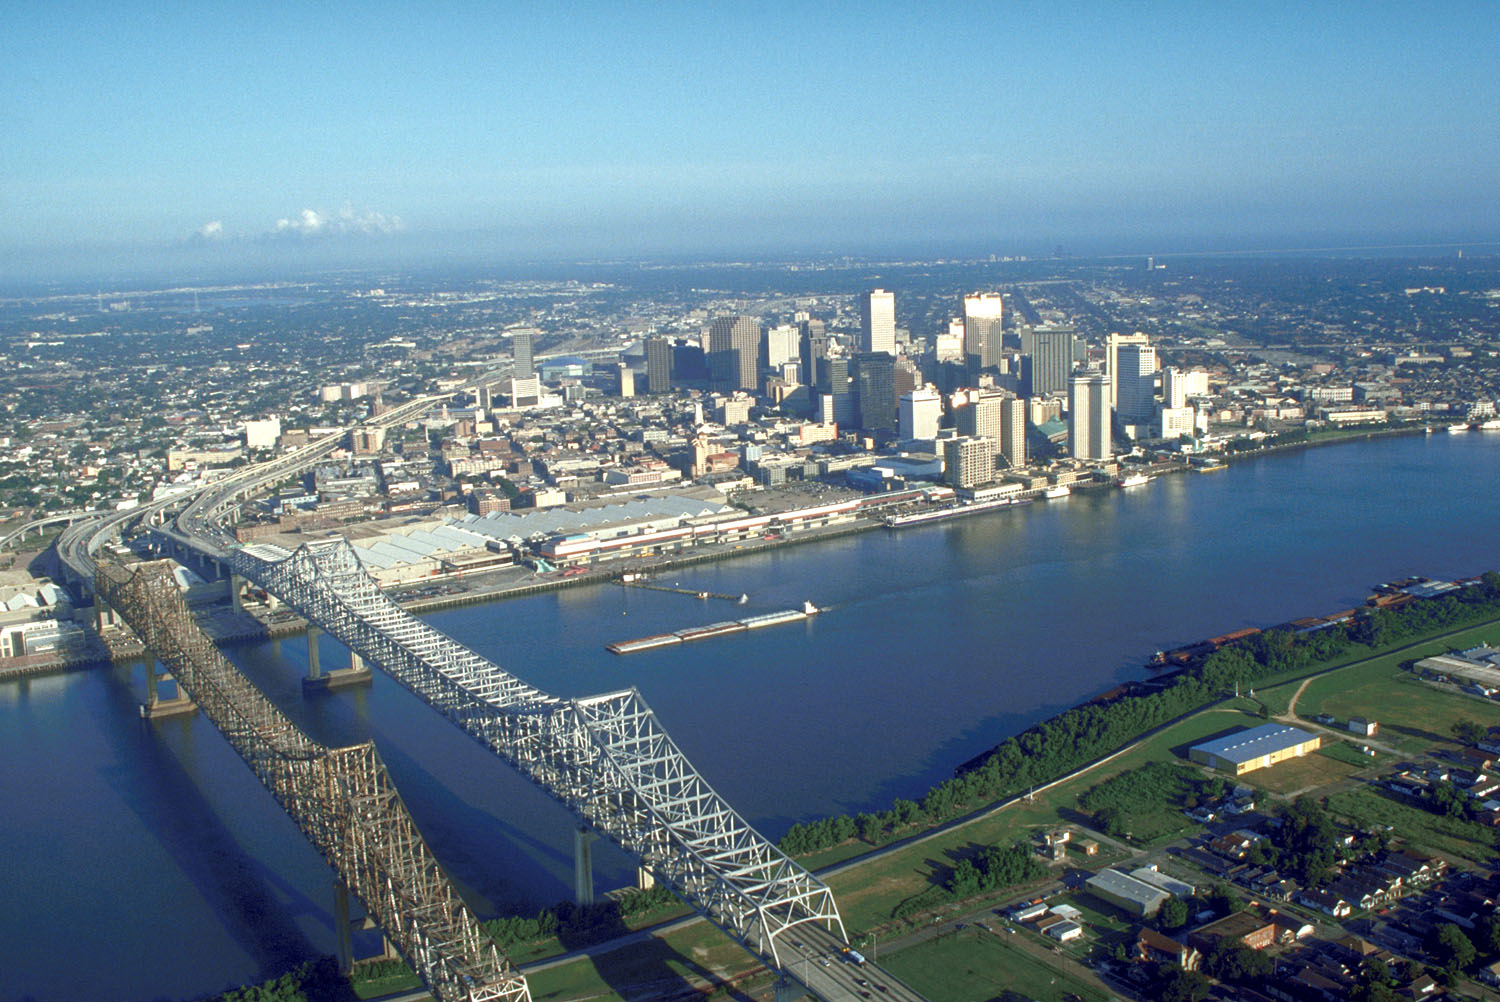 City and Katrina Bus - Find our City Bus tours here starting at just $45 per person!